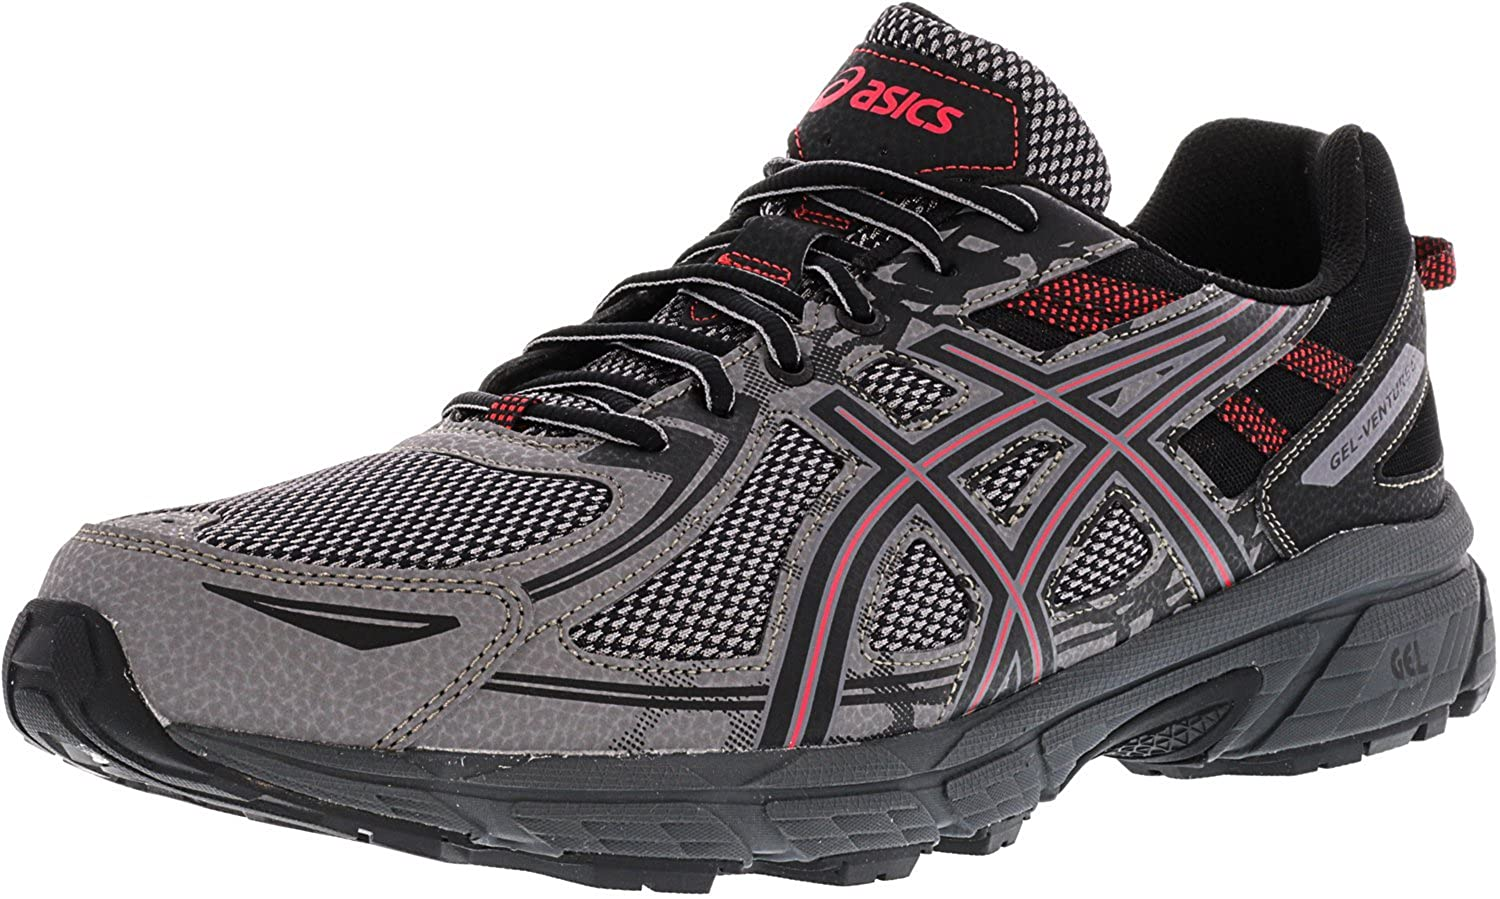 Asics Men's 6 Gel-Venture 6 Ankle-High Running Shoe B077MMT6VB Running Carbon 9.5/Cayenne 9.5 M US 9.5 M US|Carbon/Cayenne, 燃えるカワサキグループ:be3956d6 --- lindauprogress.se